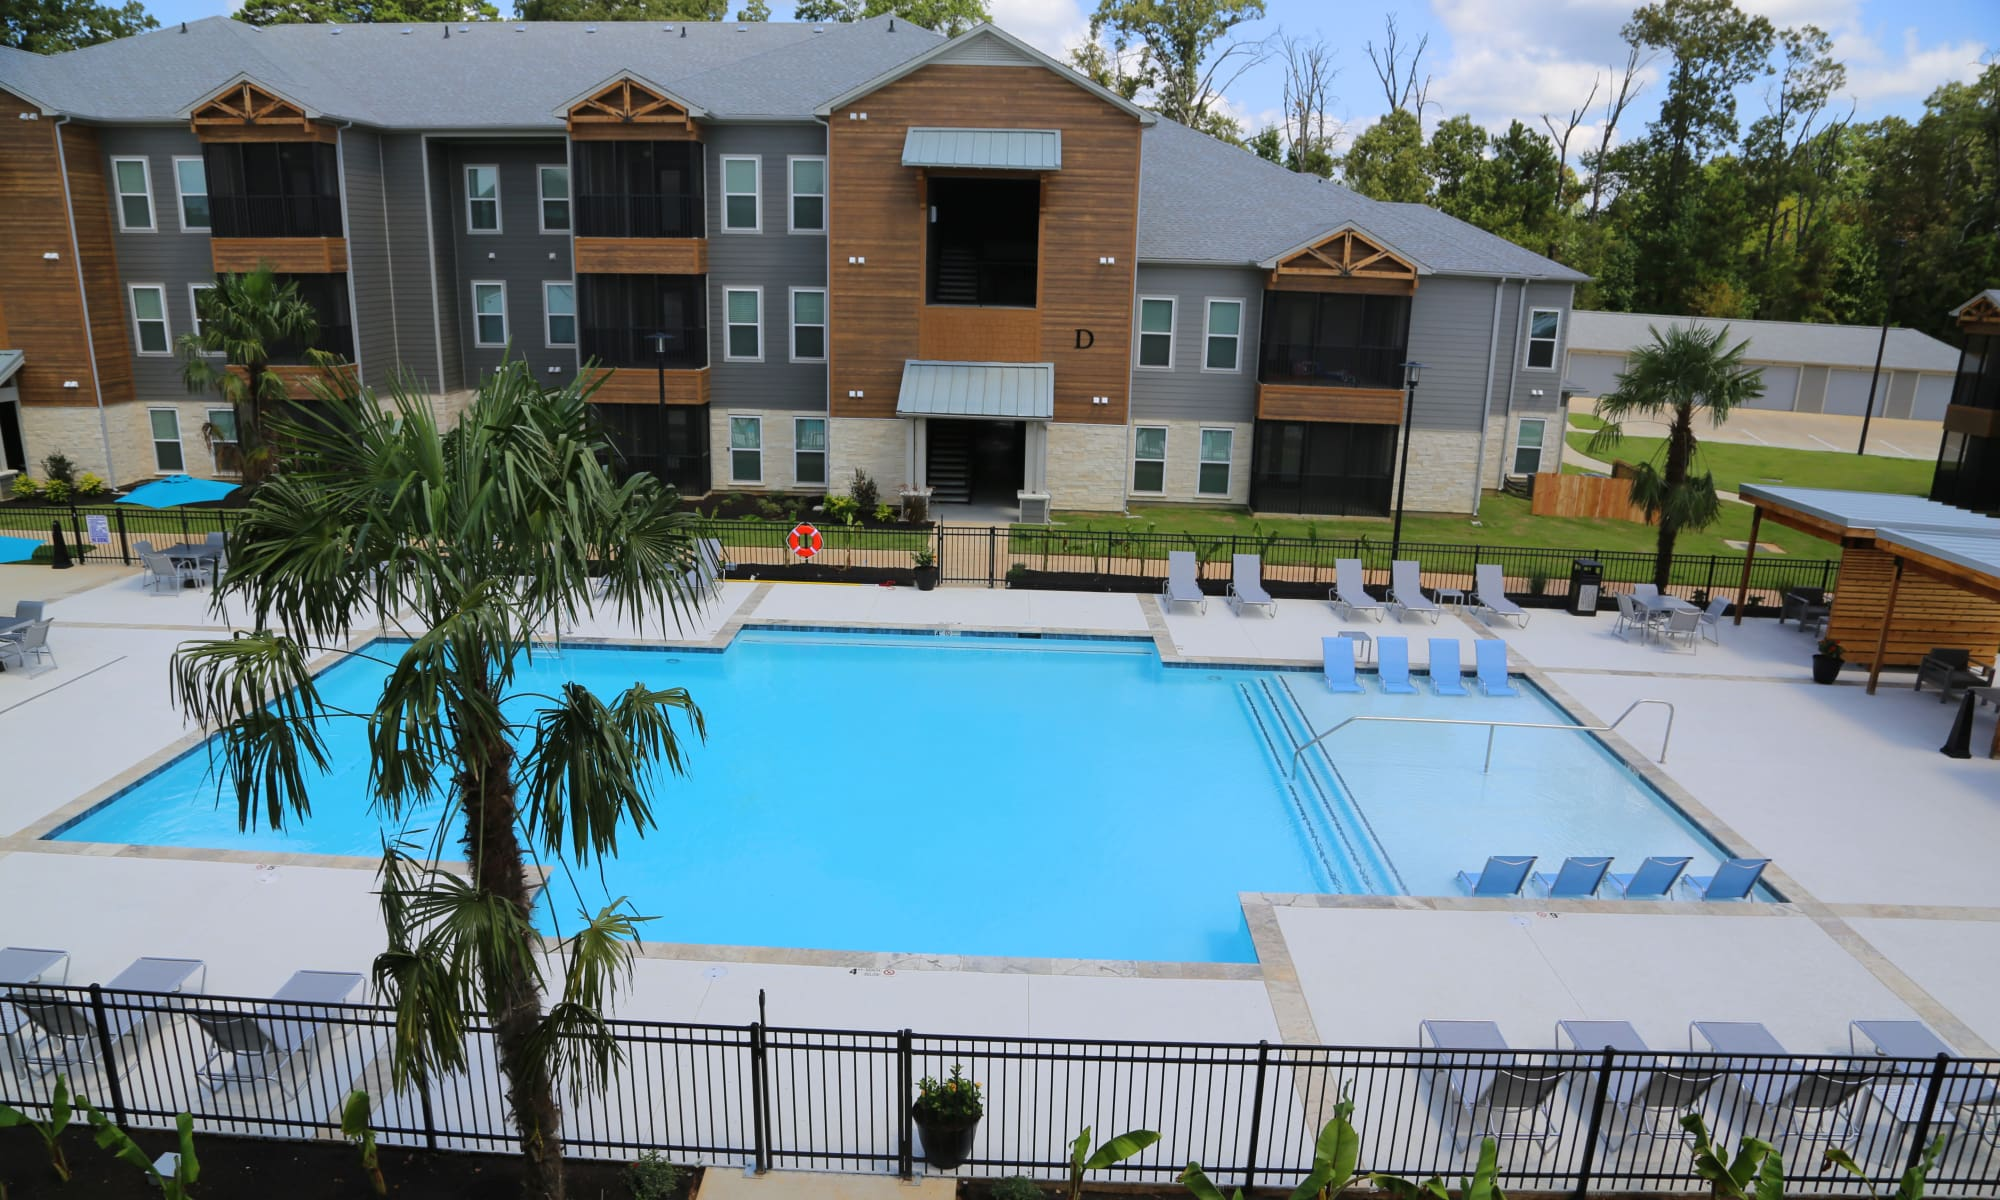 Apartments at Belforest Villas in Daphne, Alabama